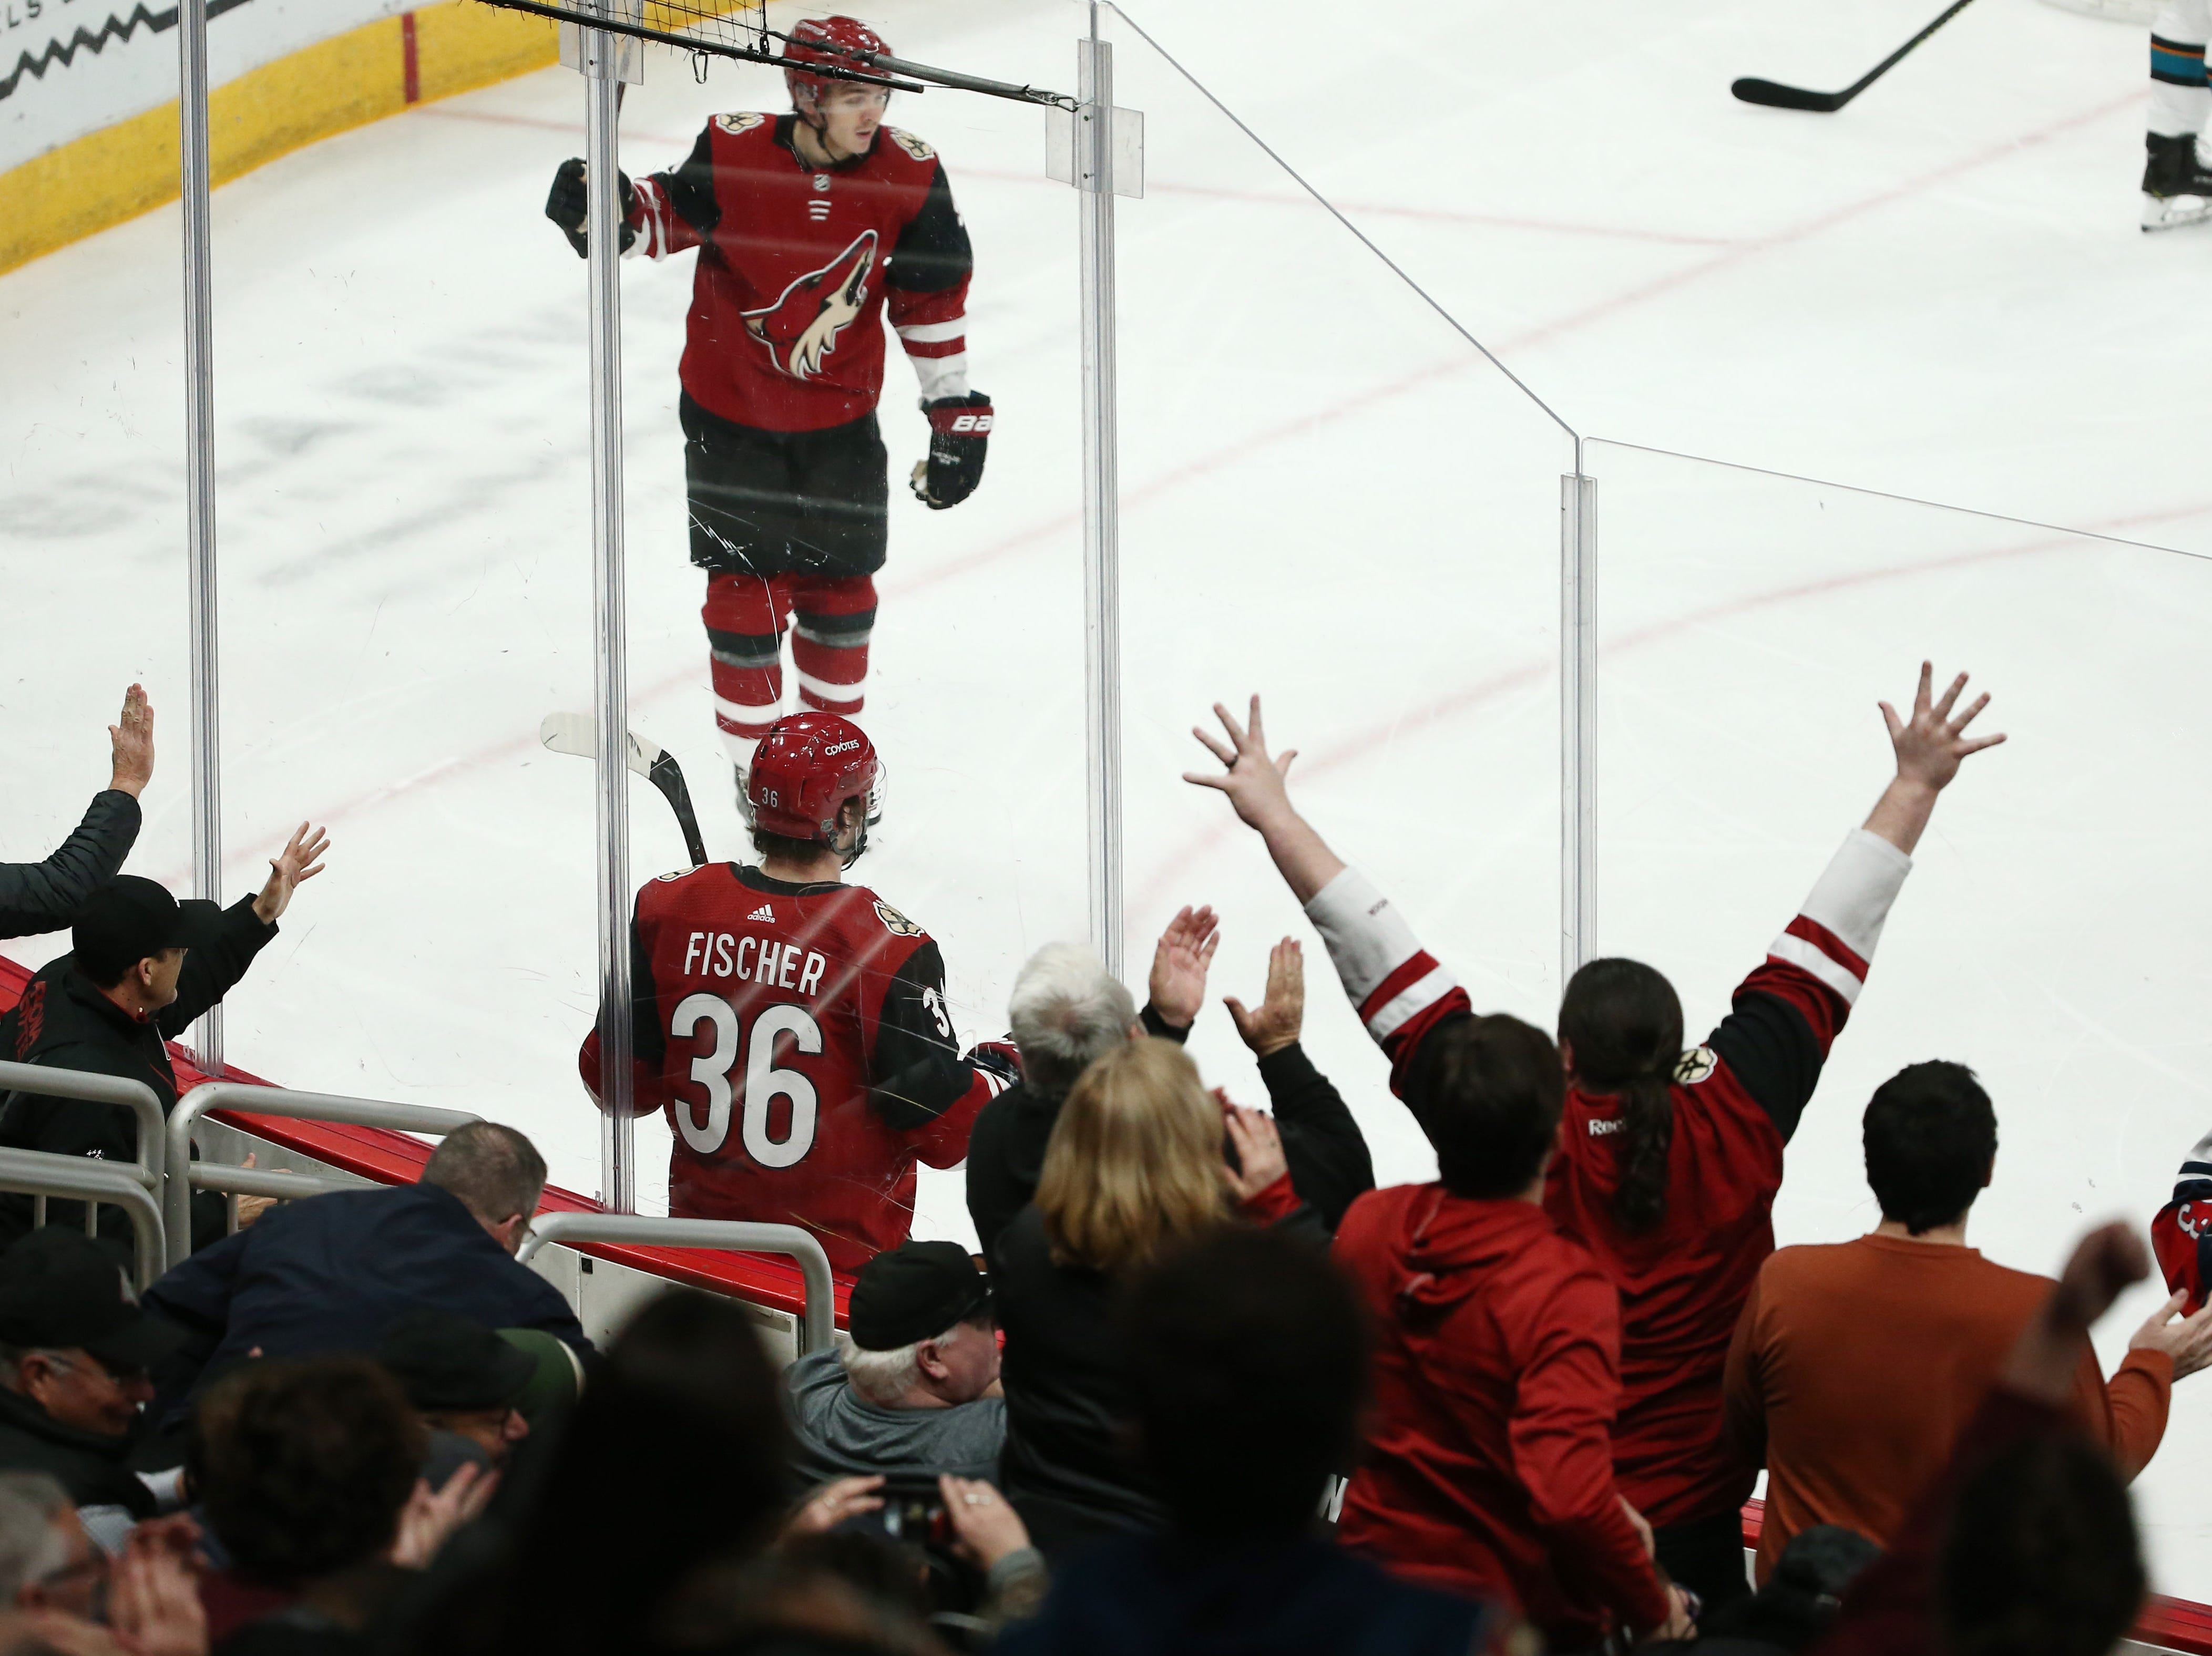 Arizona Coyotes' Christian Fischer (36) celebrates after scoring a goal against the San Jose Sharks in the 2nd period on Jan. 16 at Gila River Arena.